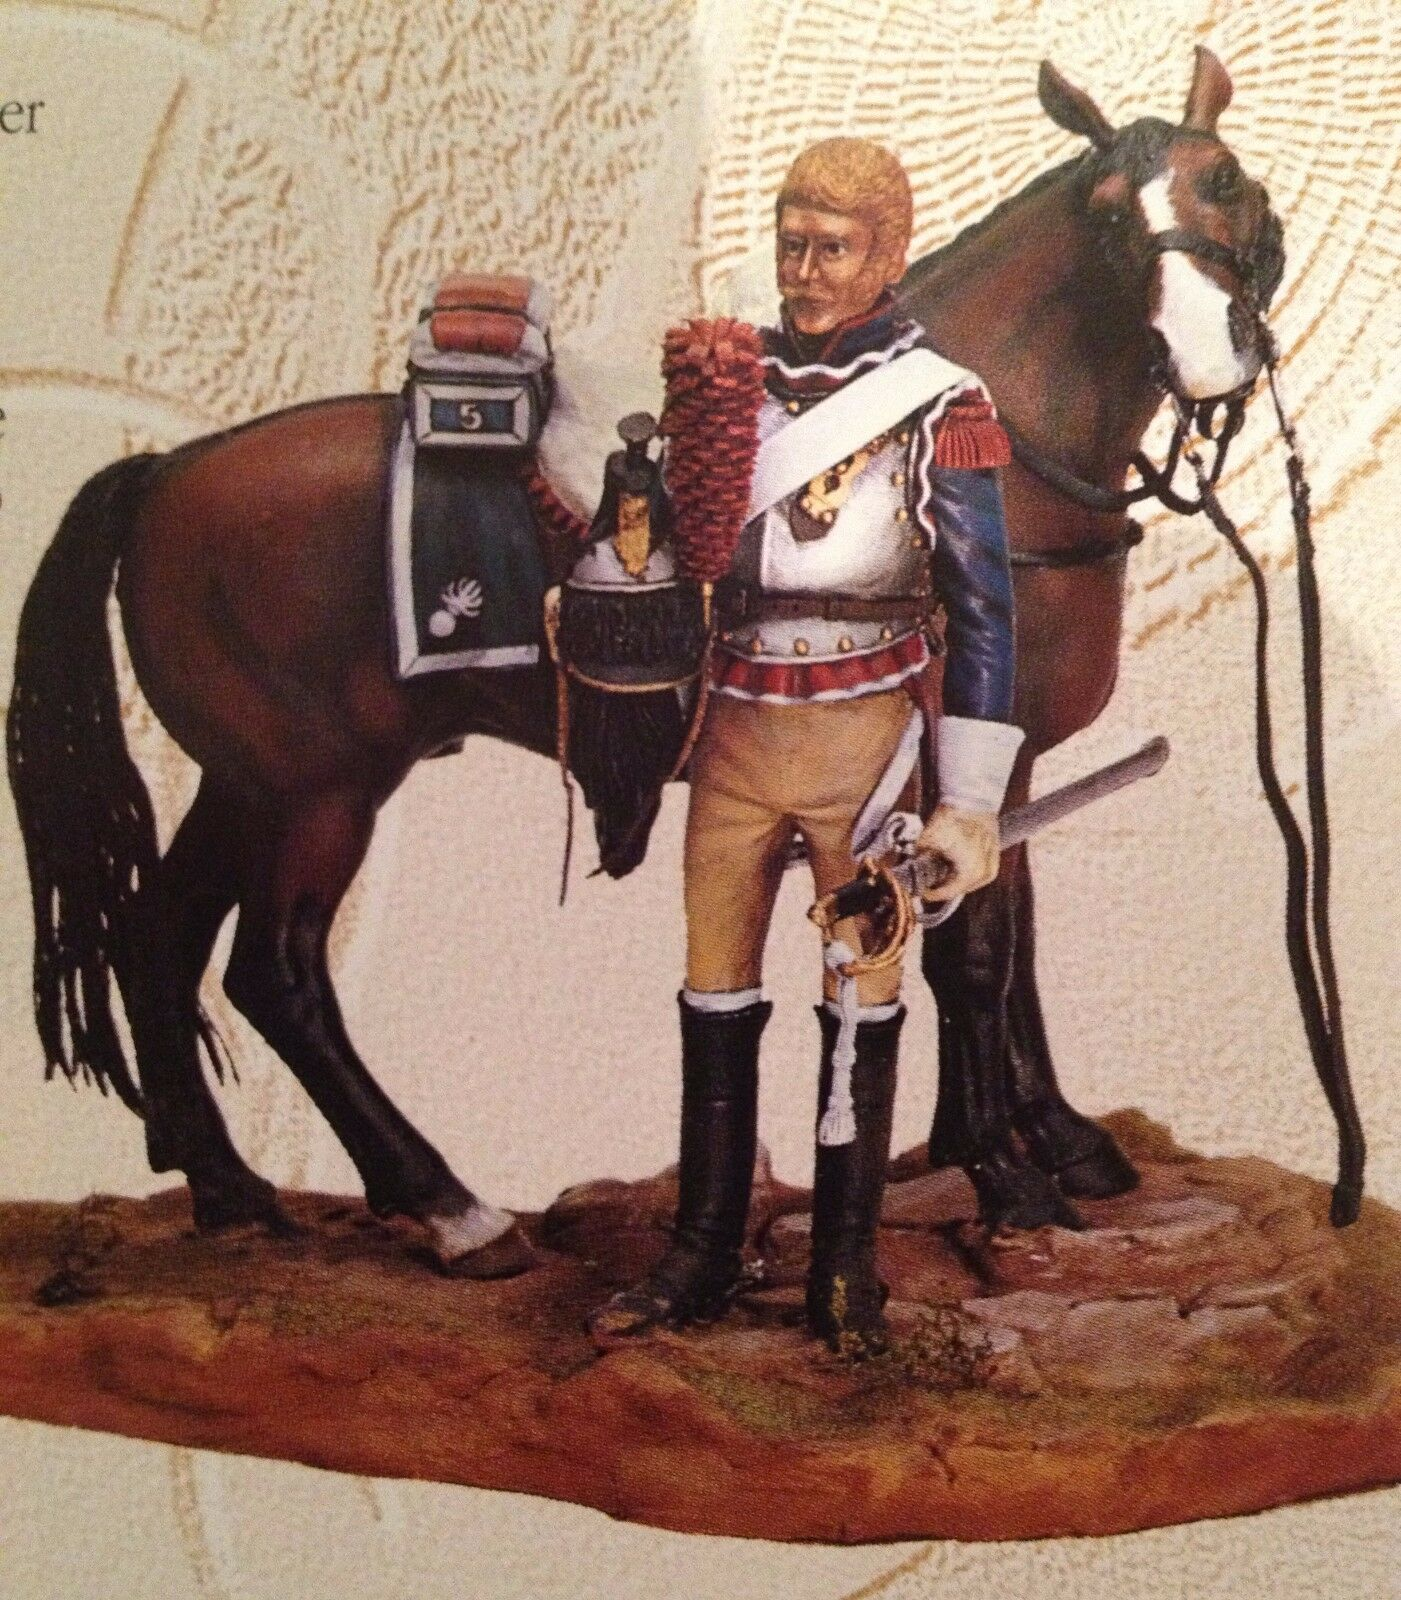 Poste Militaire Dismounted Trooper Cuirassier 90mm (Napoleonic)